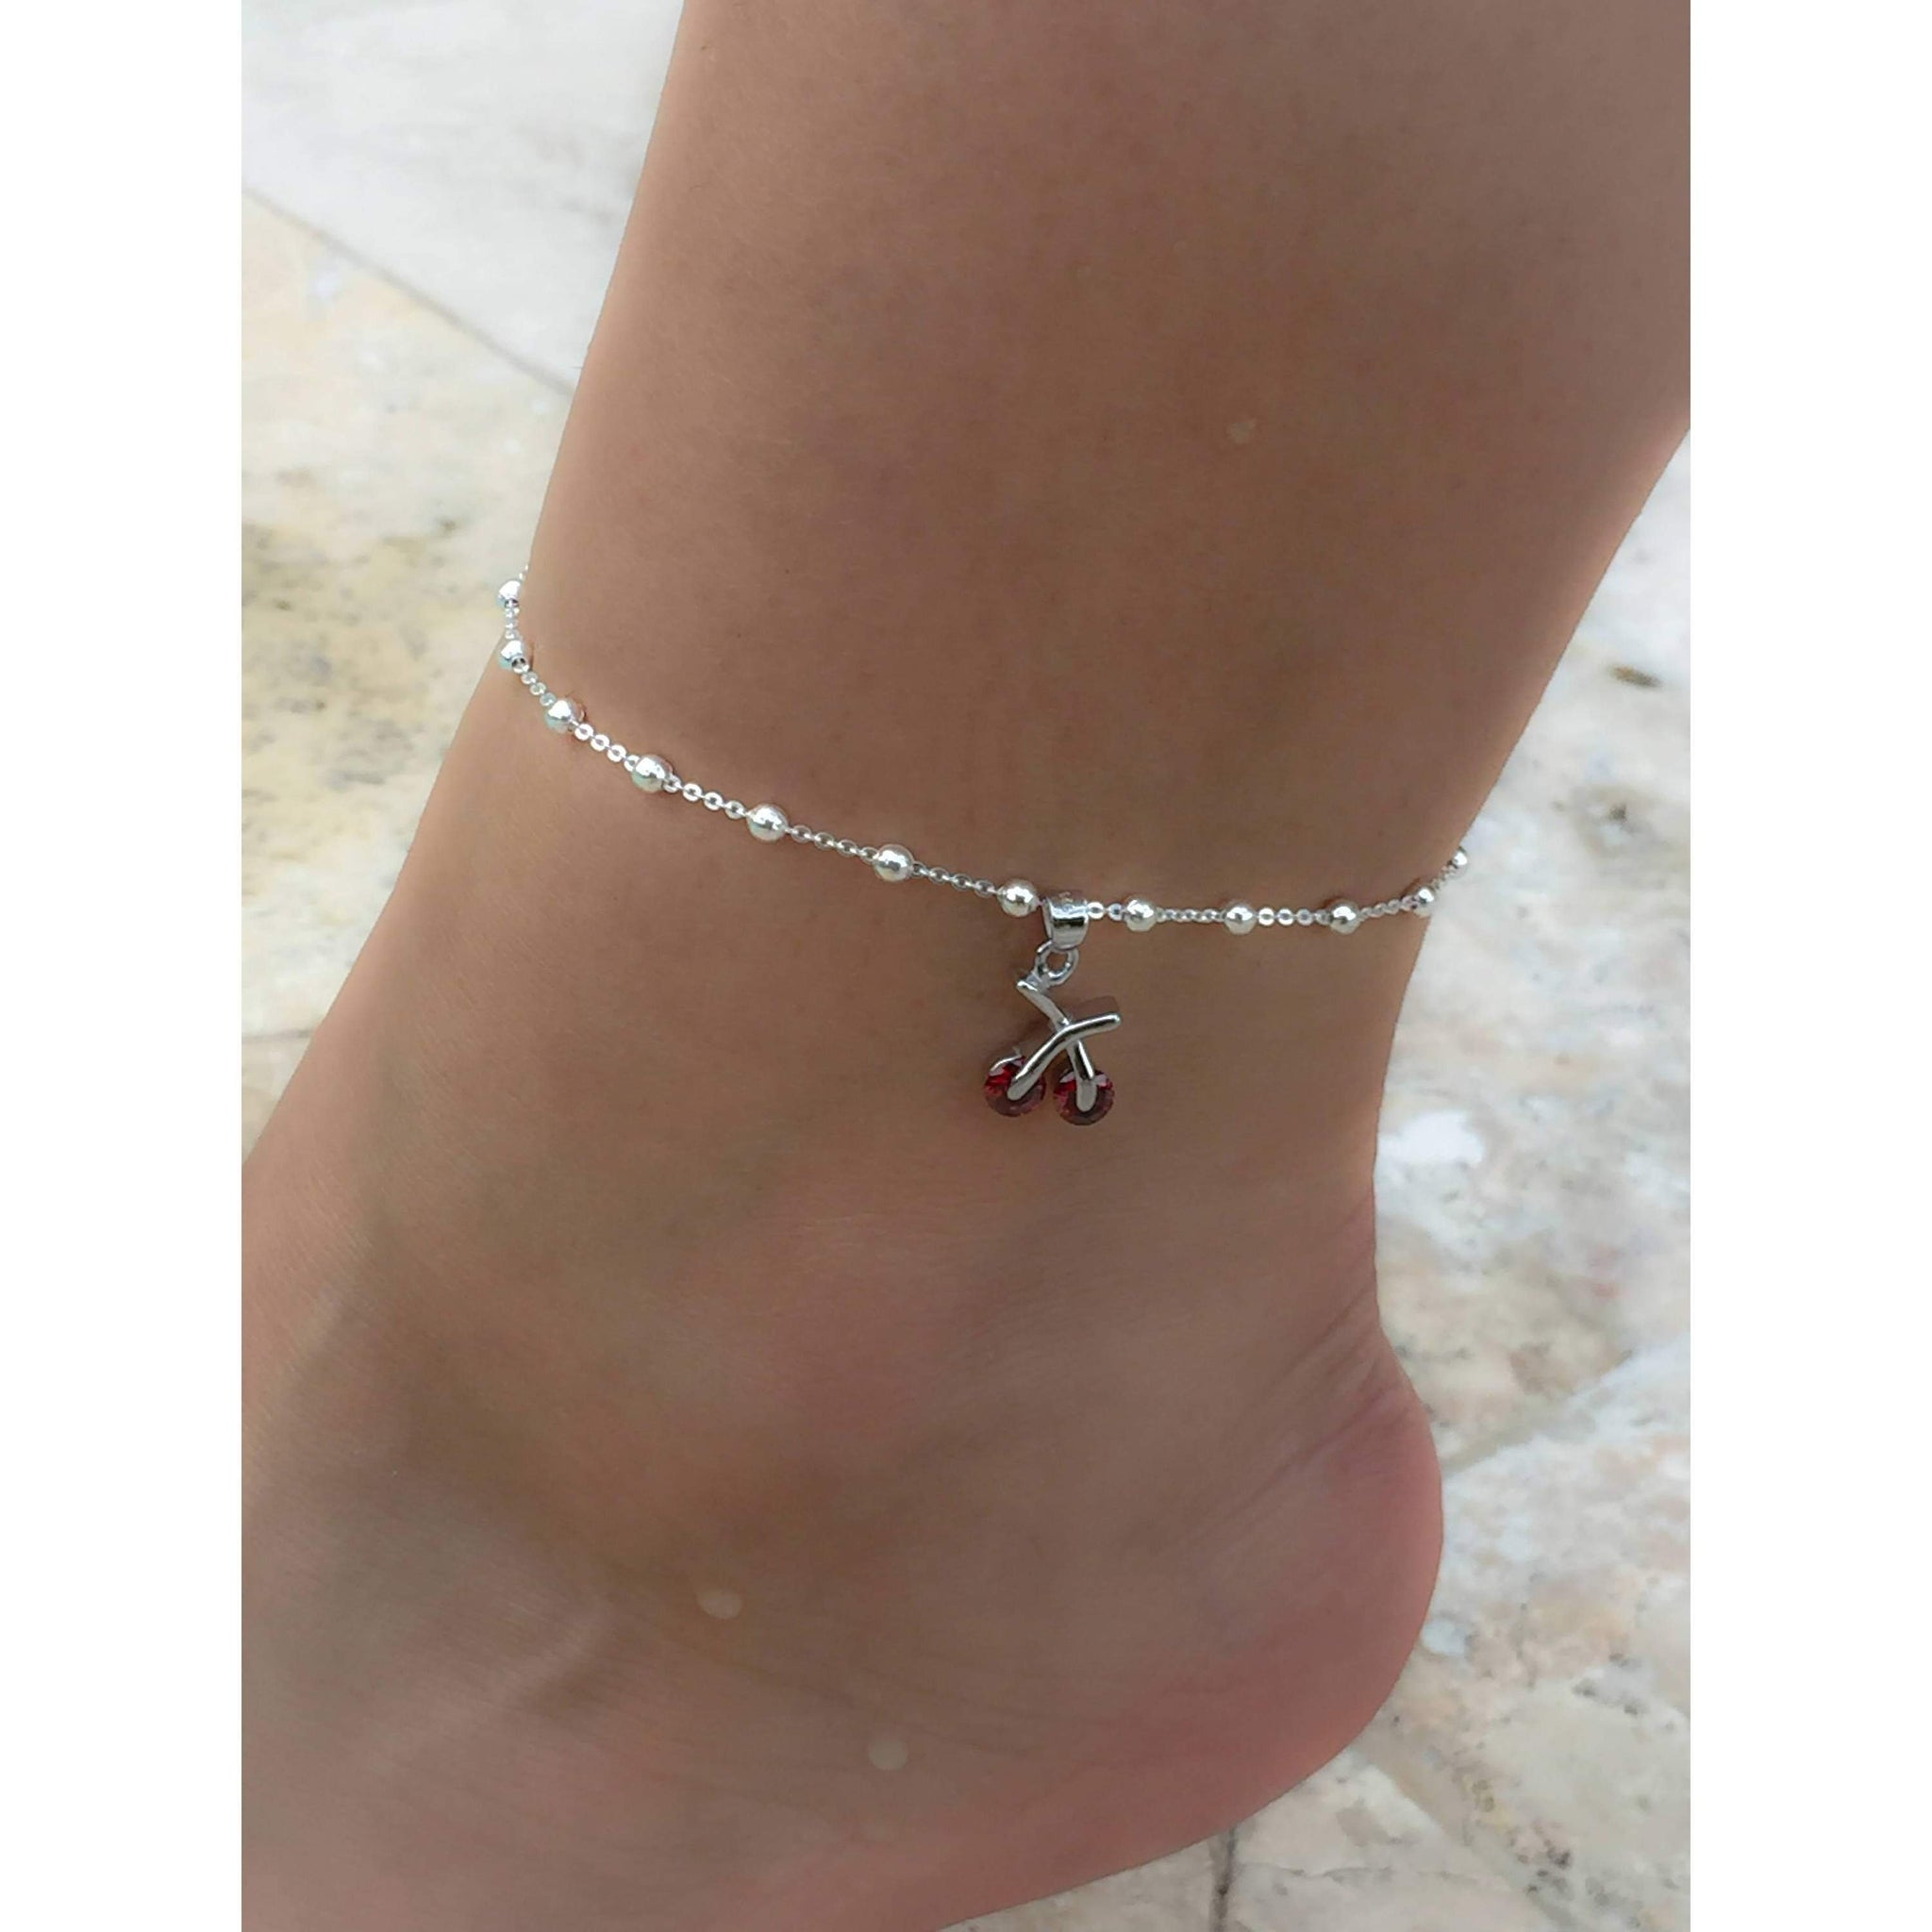 uk co bracelet adjustable finejewelers hearts jewellery inches dp anklet double bracelets amazon by ankle